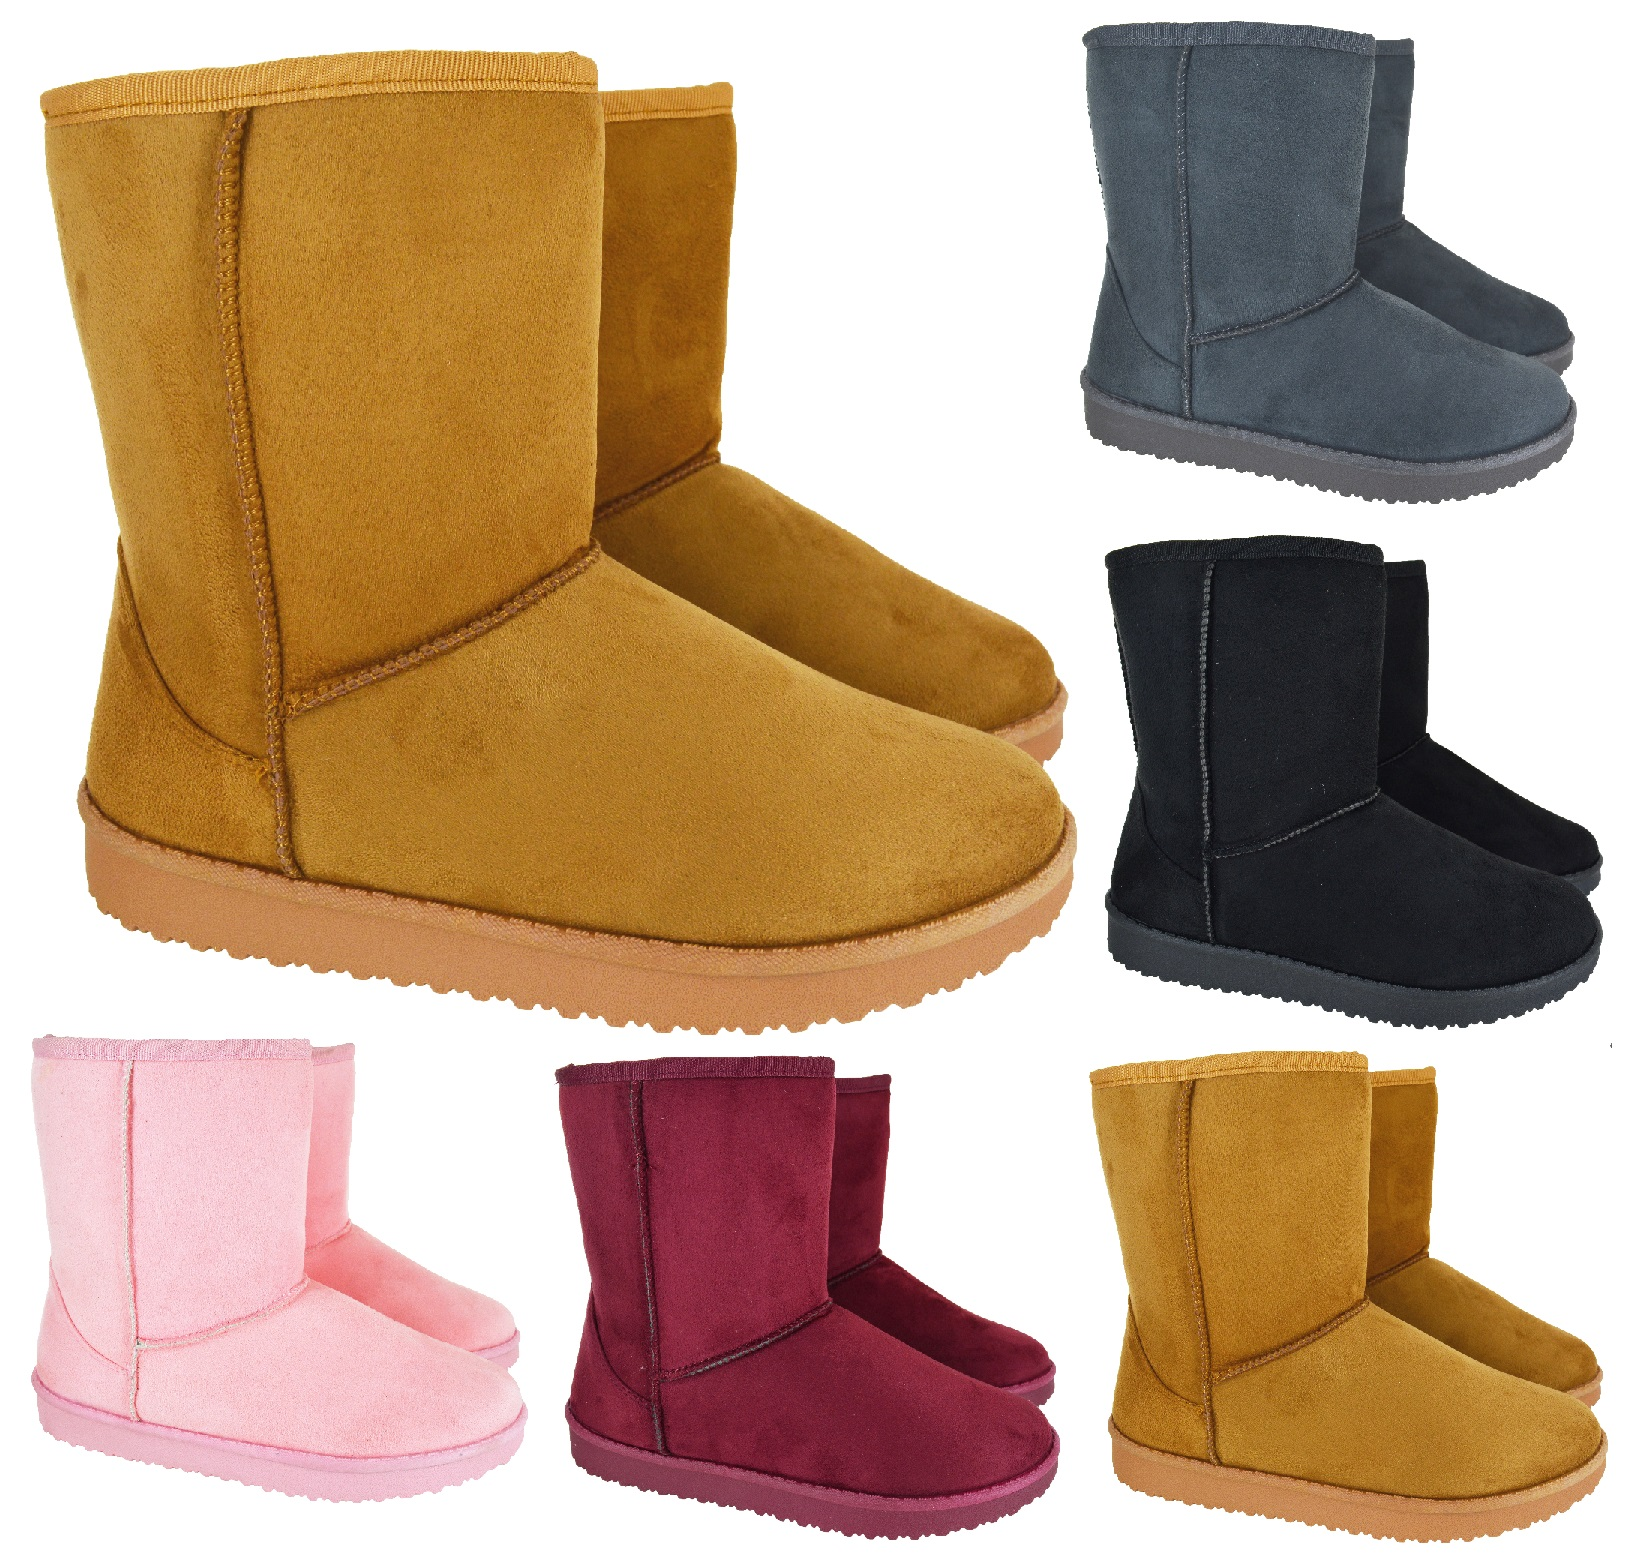 LADIES WOMENS WARM WINTER FAUX FUR LINED HUG SNUGG ANKLE SHOES BOOTS SIZE 3-8